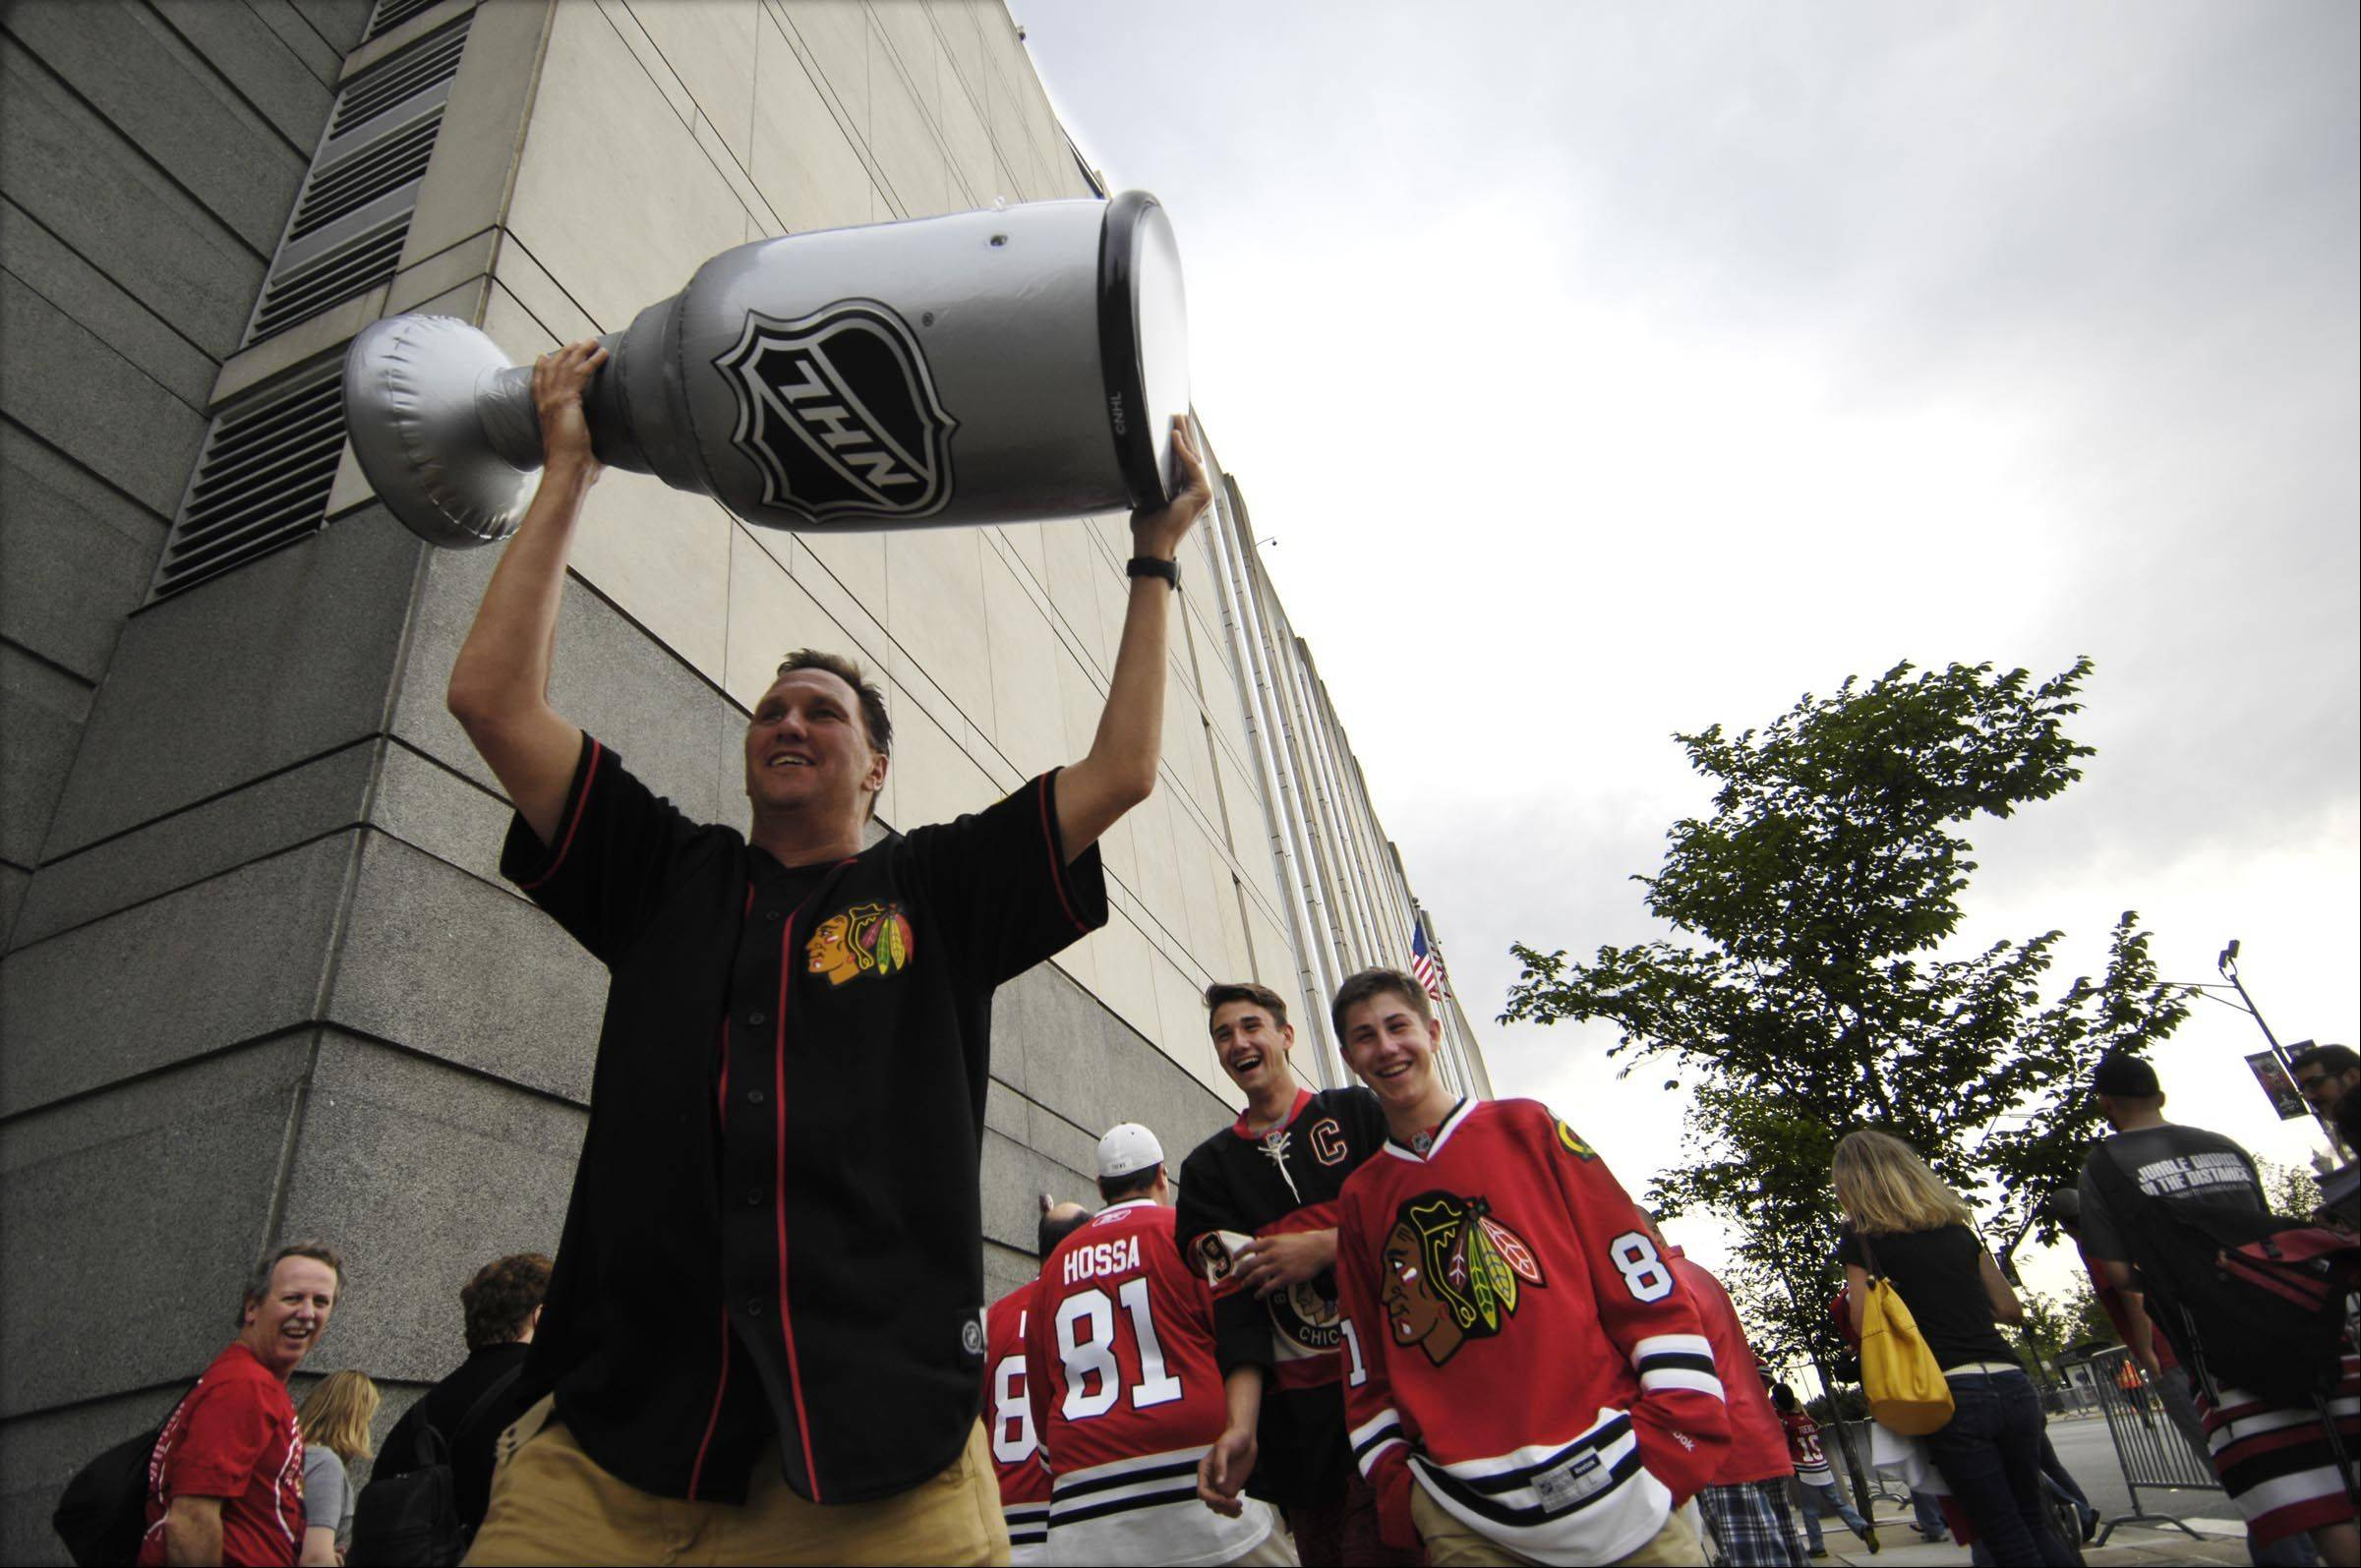 Yaro Dachniwsky carries a replica Stanley Cup with sons Alex and Adrian Saturday before Game 5 of the Stanley Cup Finals at the United Center in Chicago. They are from Lake Forest.